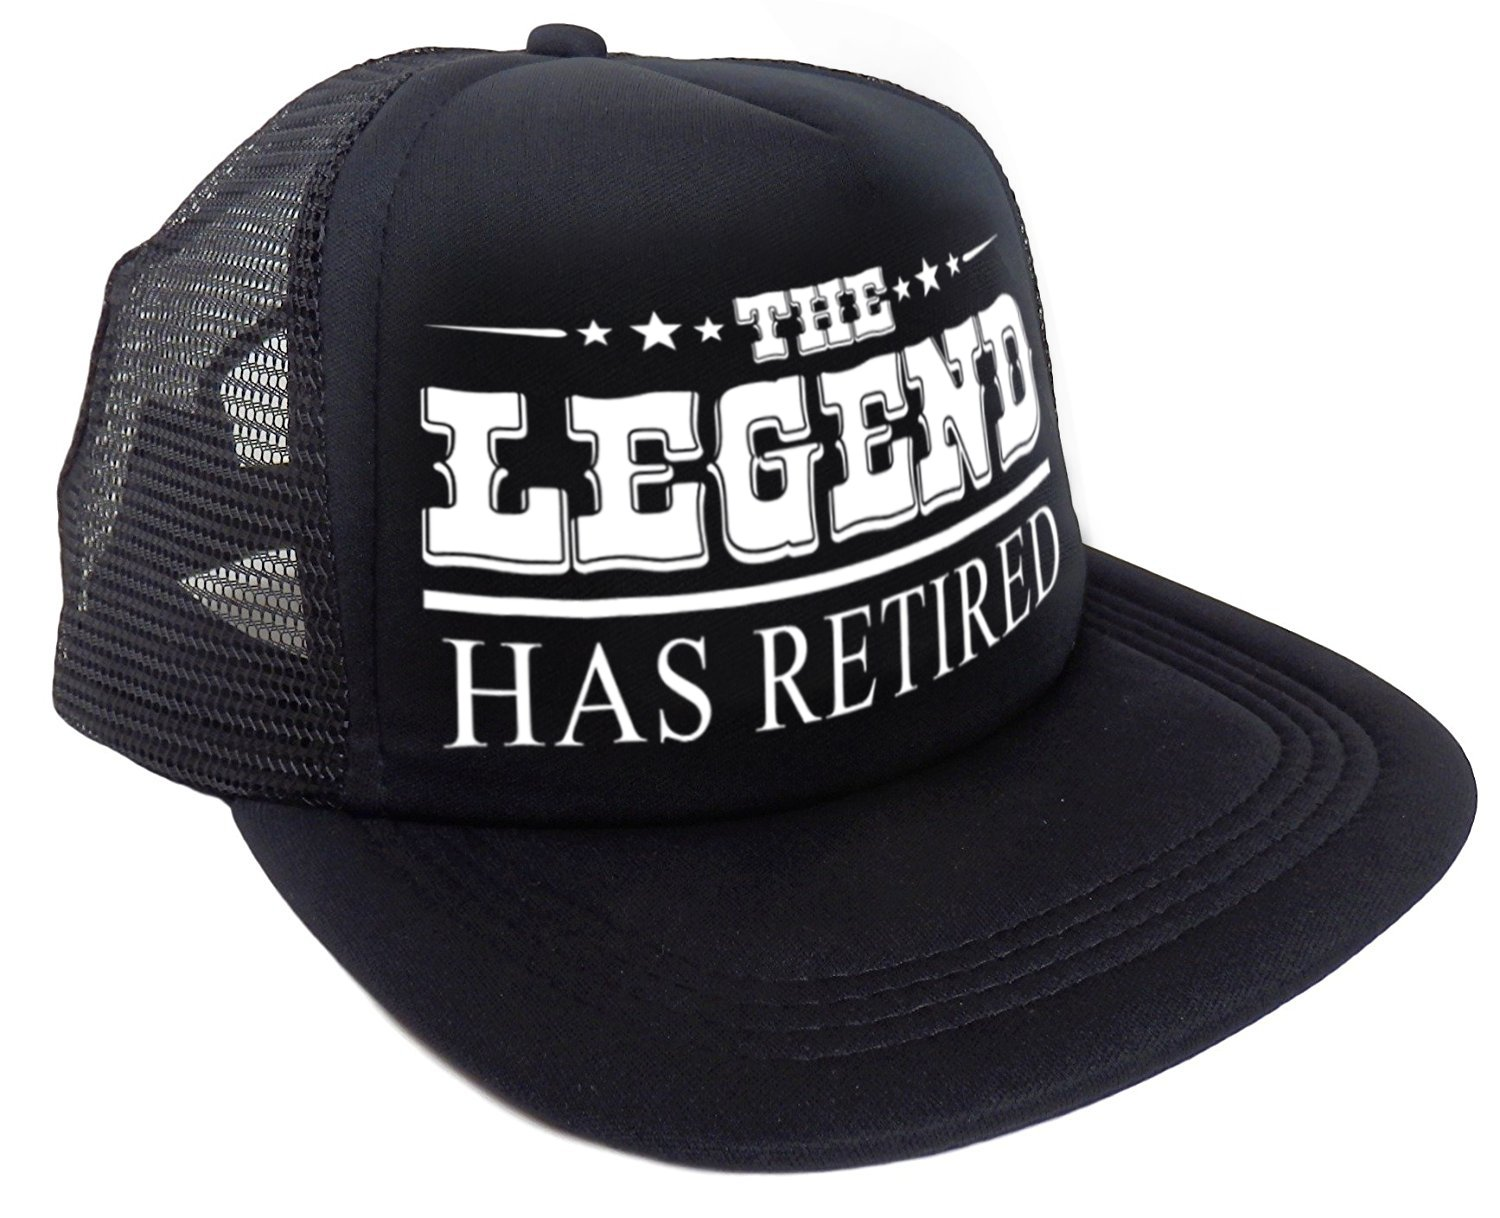 ''The Legend Has Retired'' Hat - Retirement Party Supplies, Gifts, and Decorations